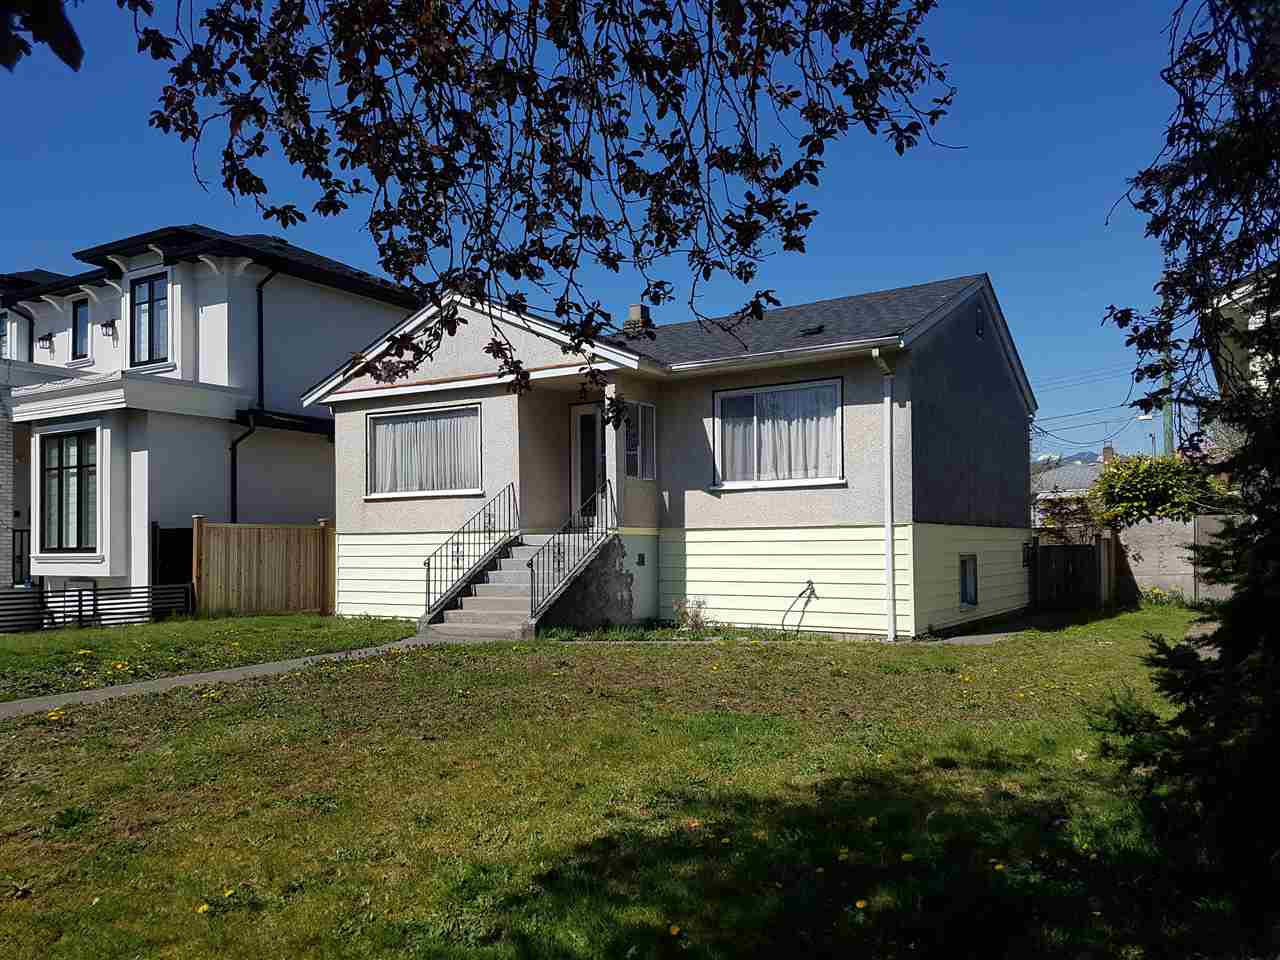 2563 E 16TH AVENUE - Renfrew Heights House/Single Family for sale, 3 Bedrooms (R2568299)